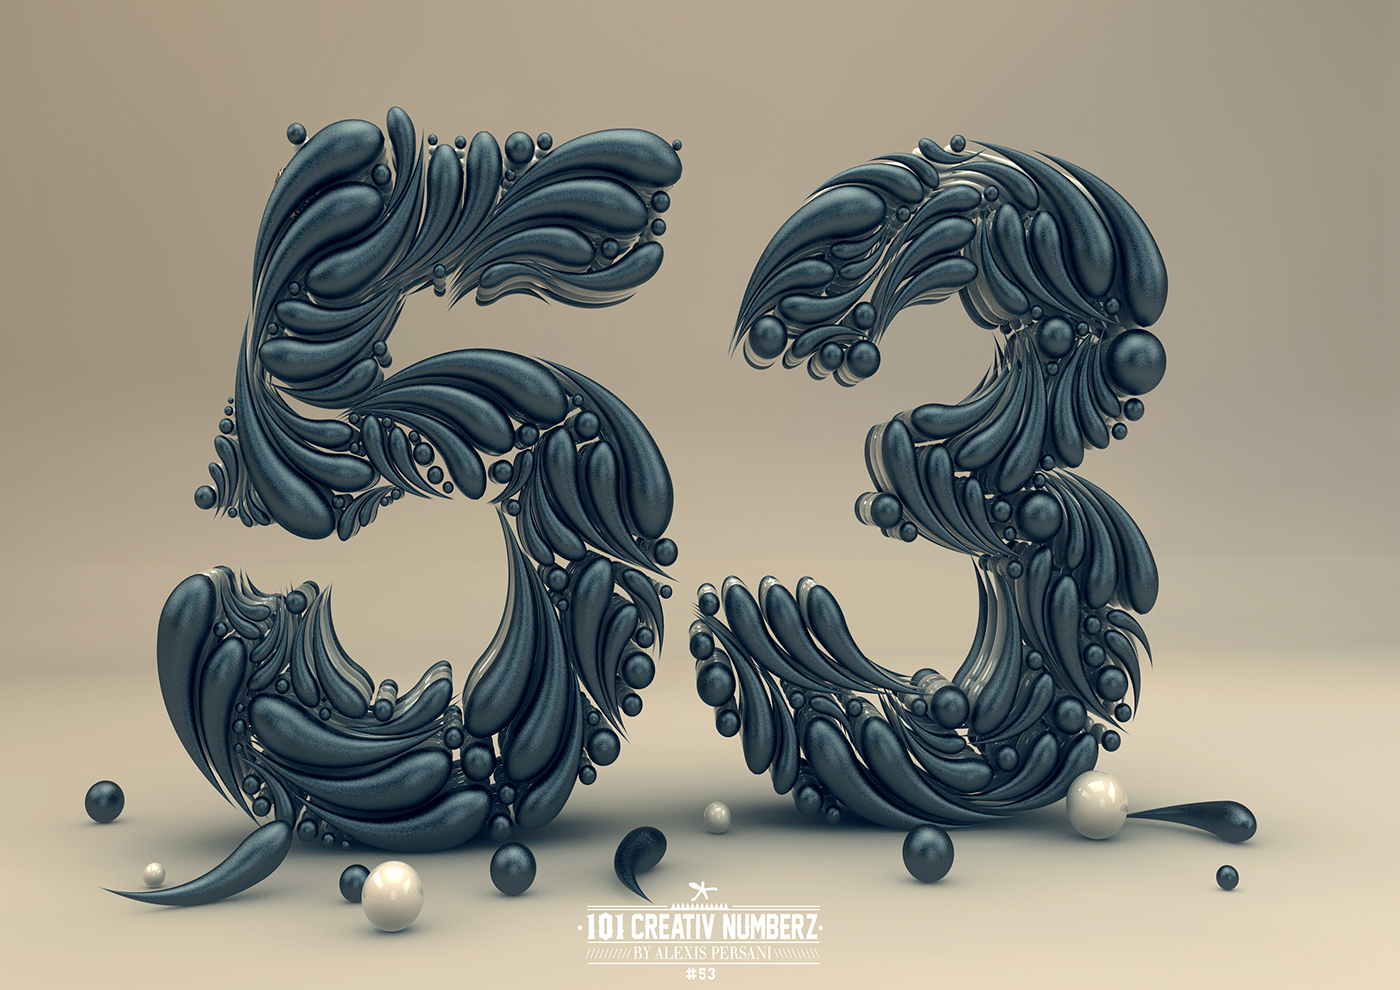 Creative Numbers Typography